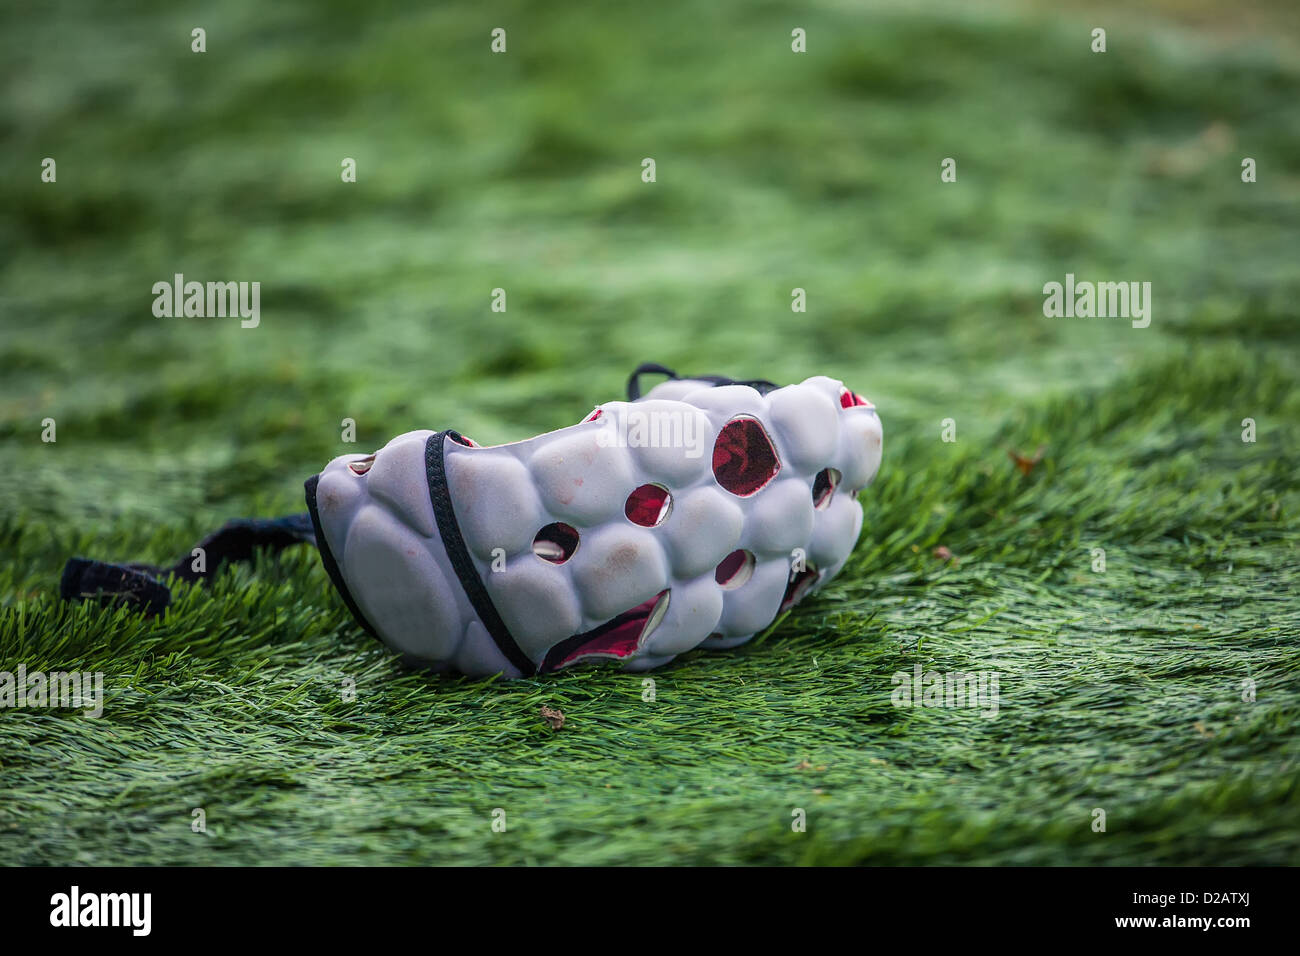 Casque rugby player Photo Stock